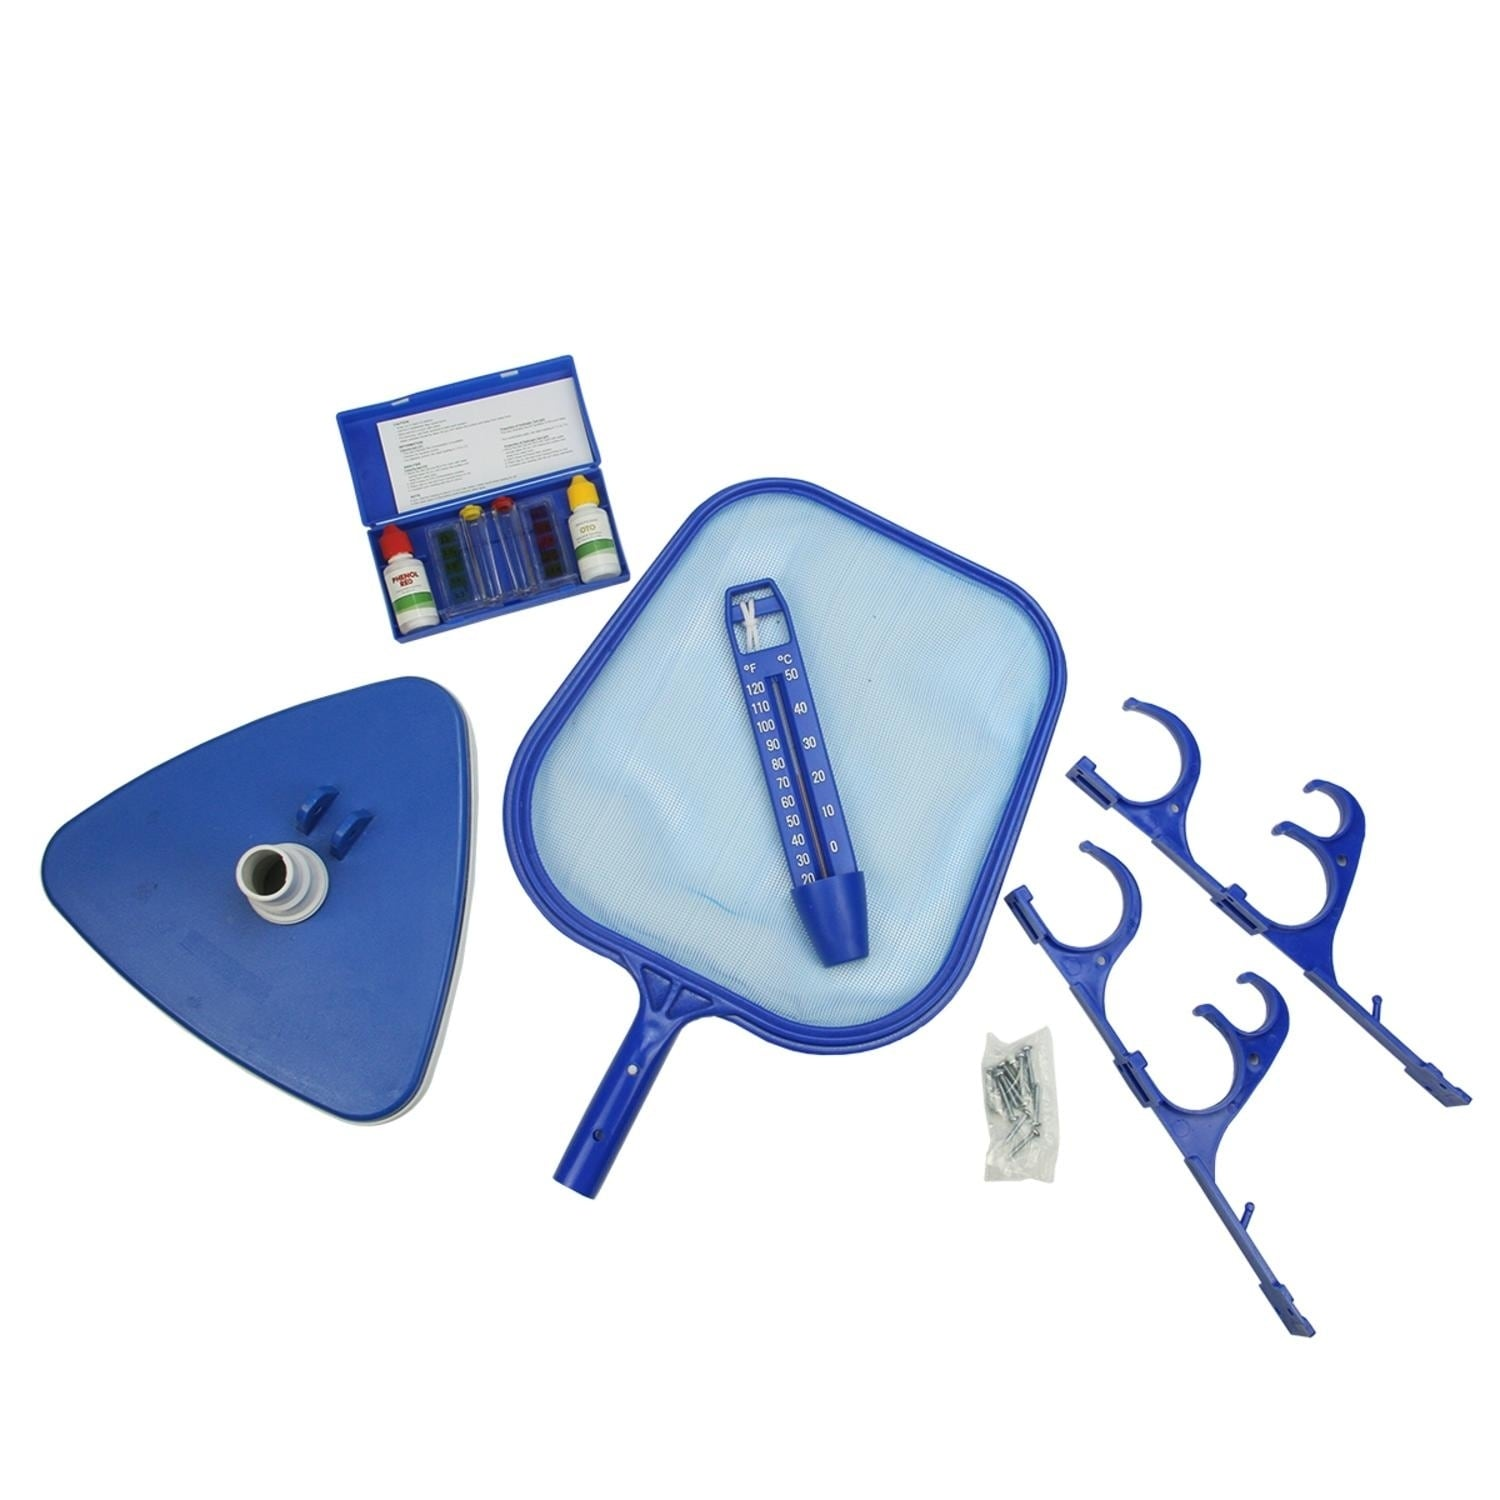 5-Piece Deluxe Swimming Pool Kit - Vacuum Skimmer Pole an...